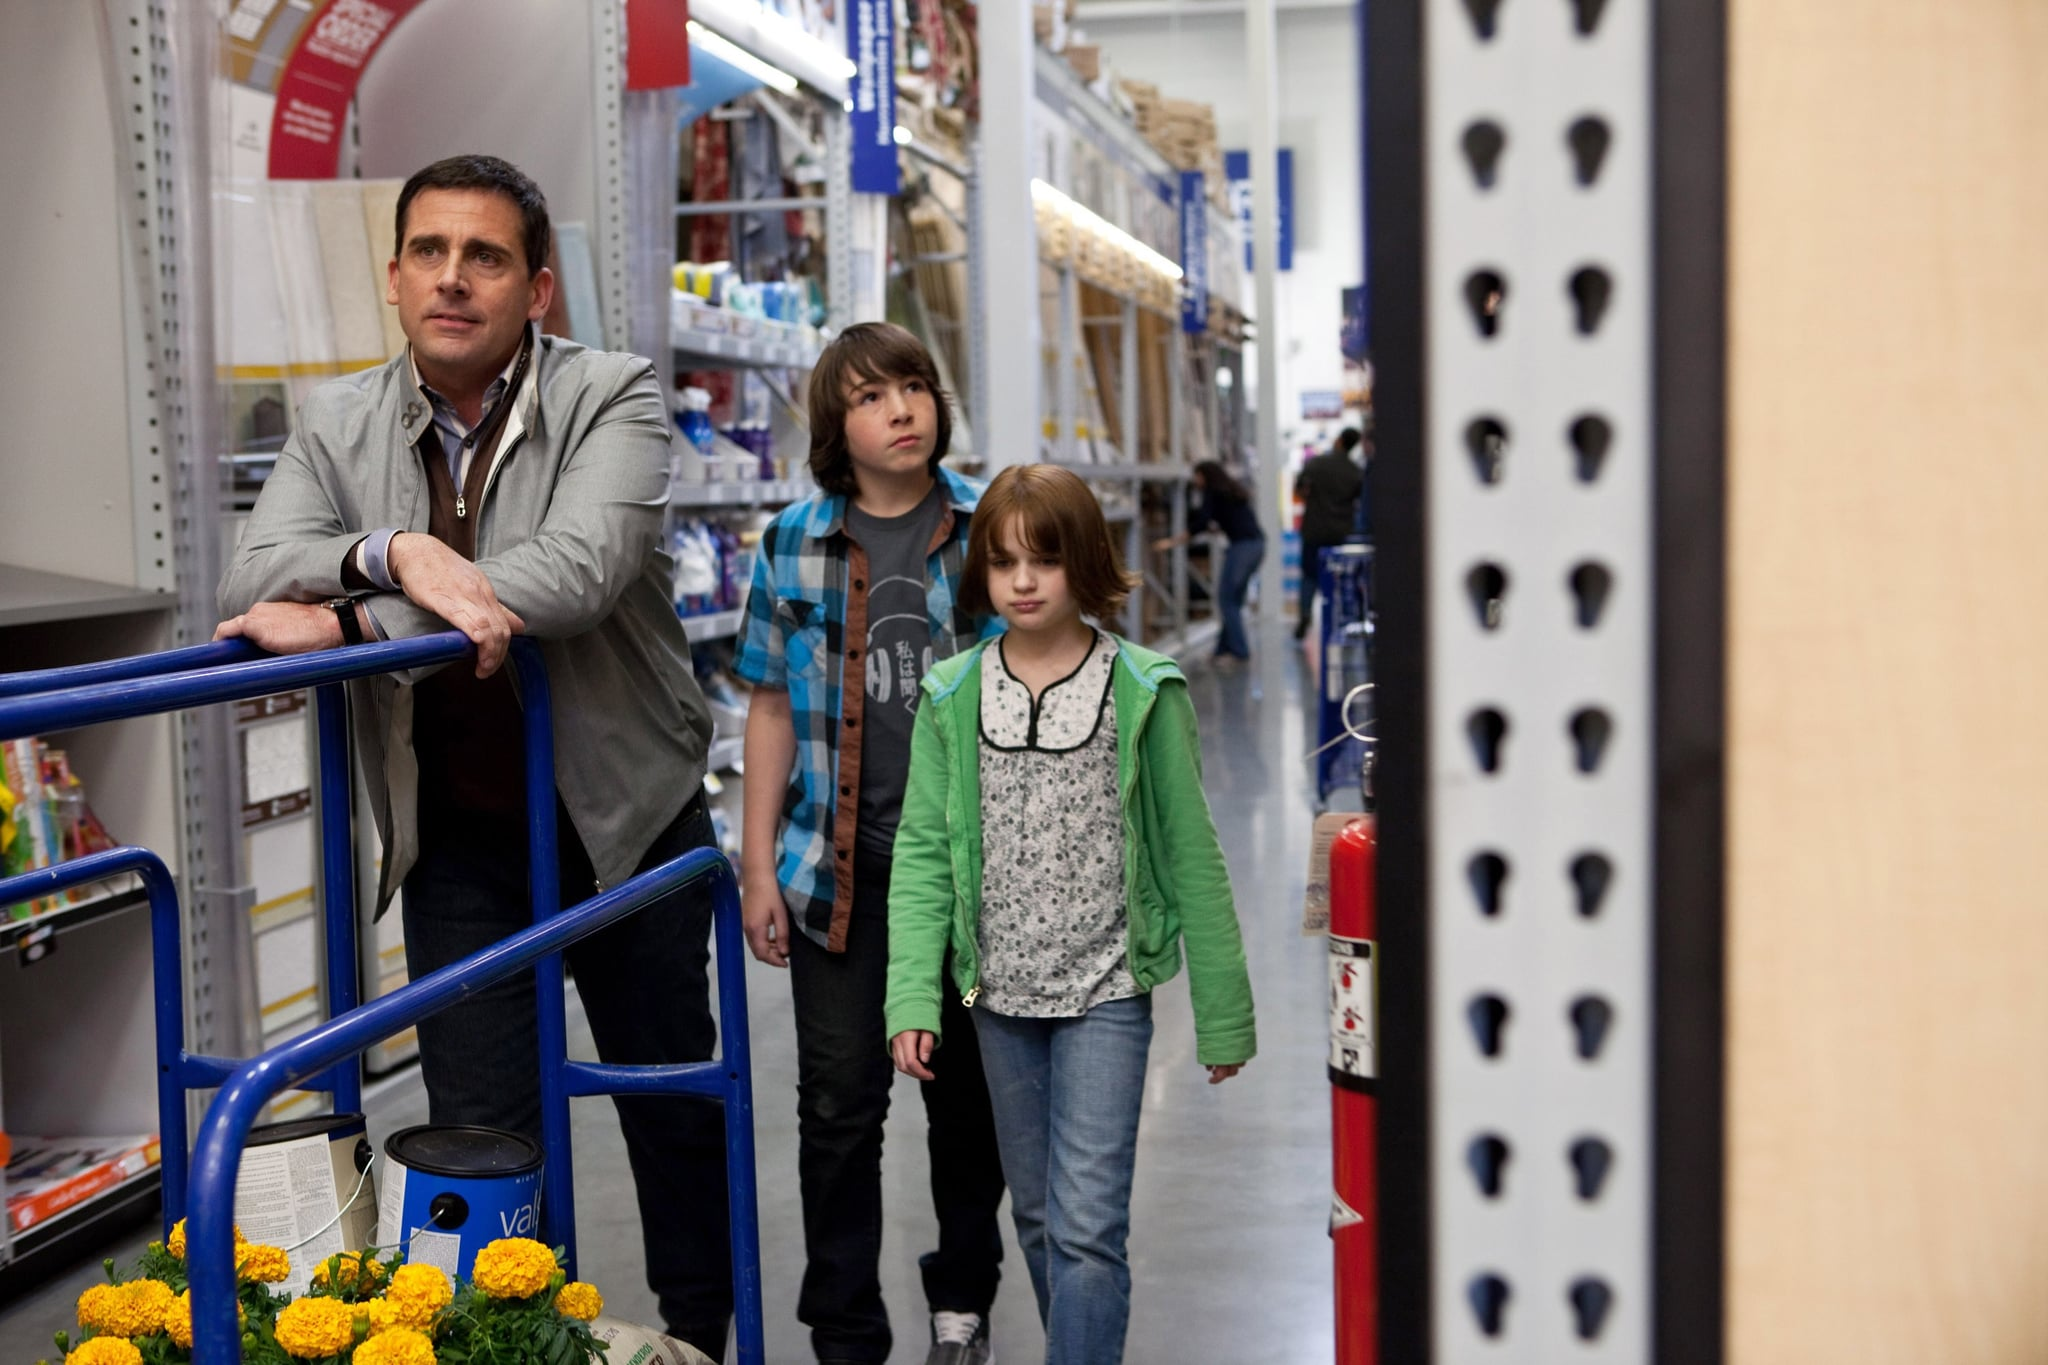 Steve Carell in Crazy, Stupid, Love